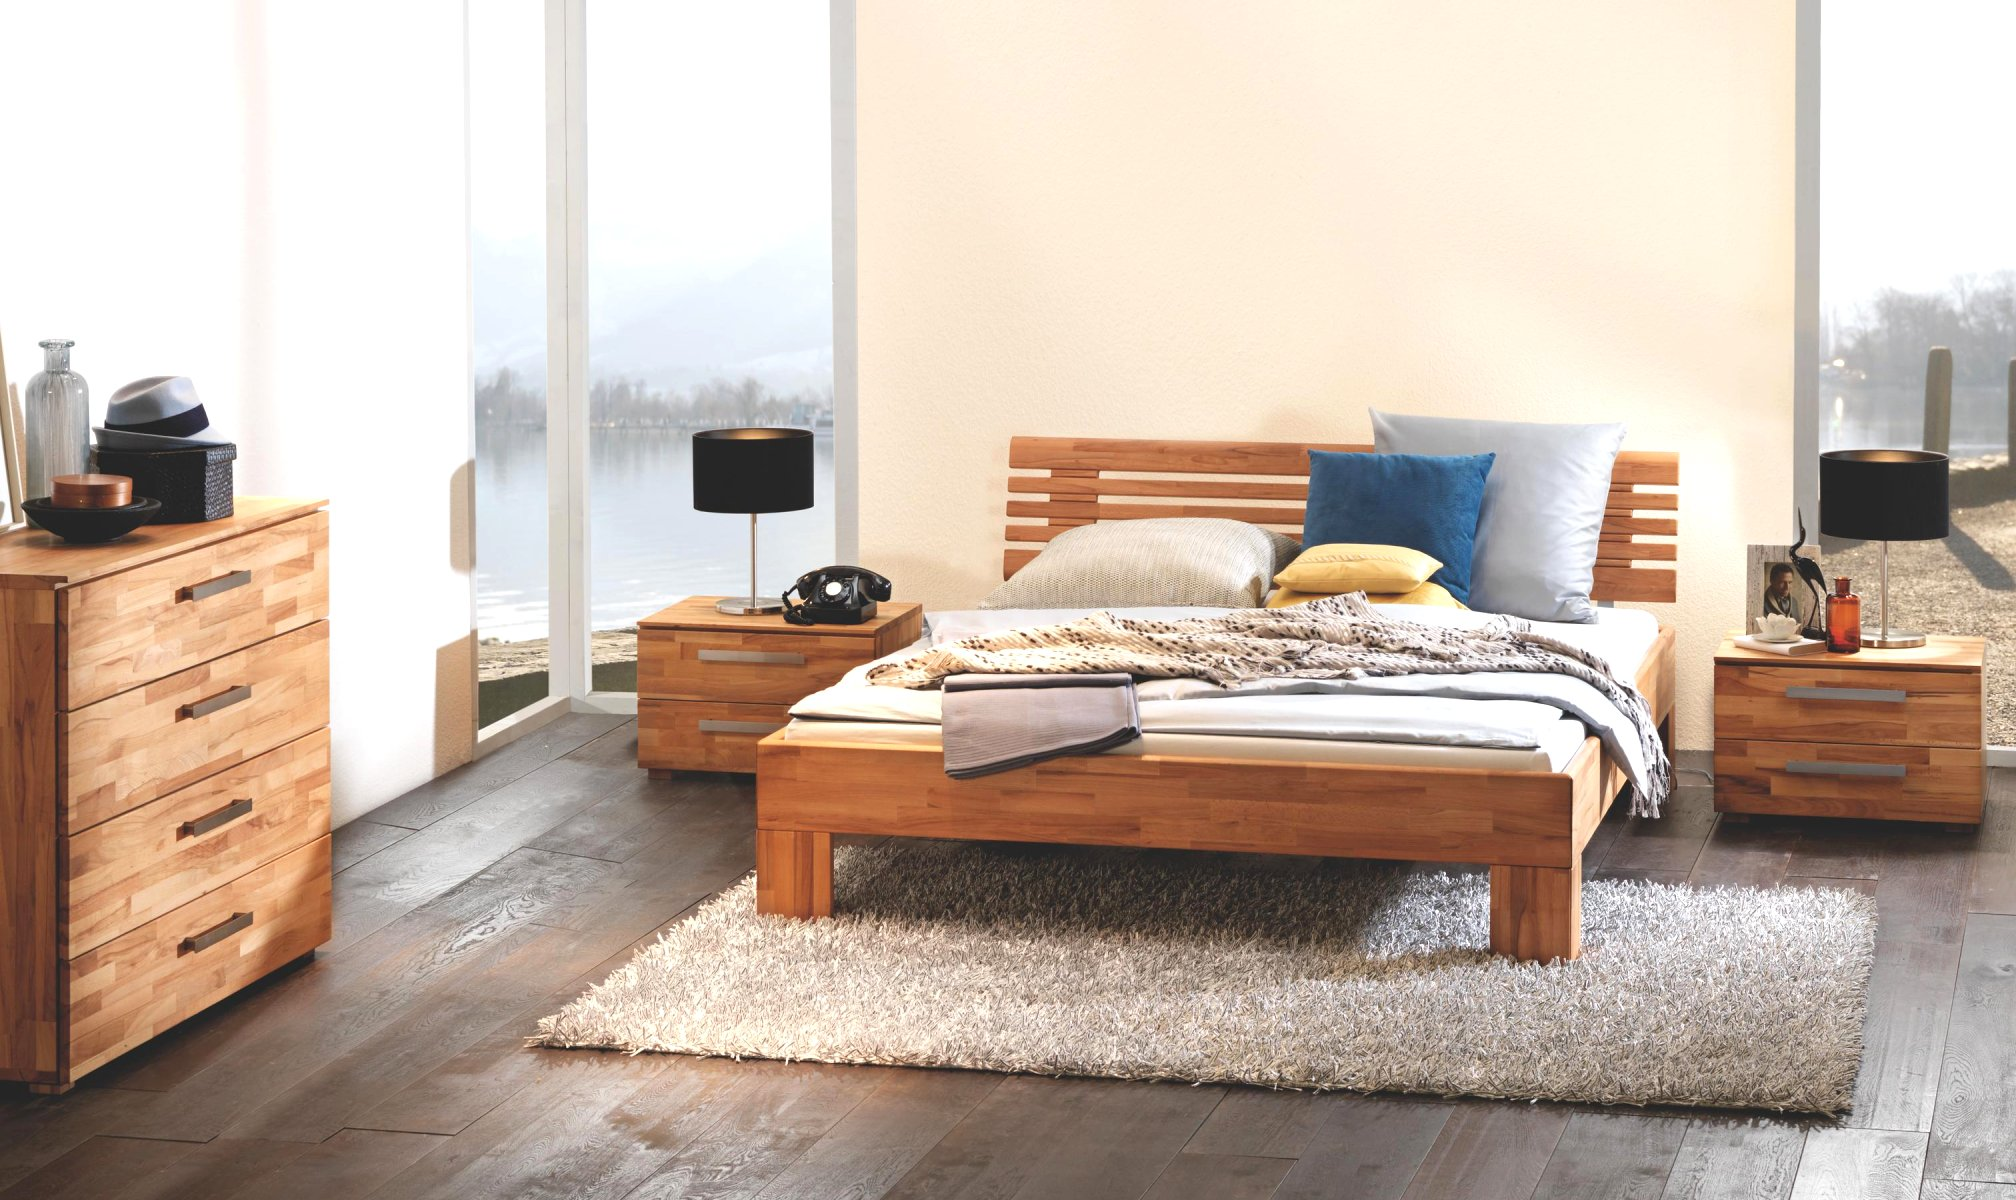 wasserbett 90x200 komplett wood line classic mit litto kopfteil boxspringbetten bremen. Black Bedroom Furniture Sets. Home Design Ideas